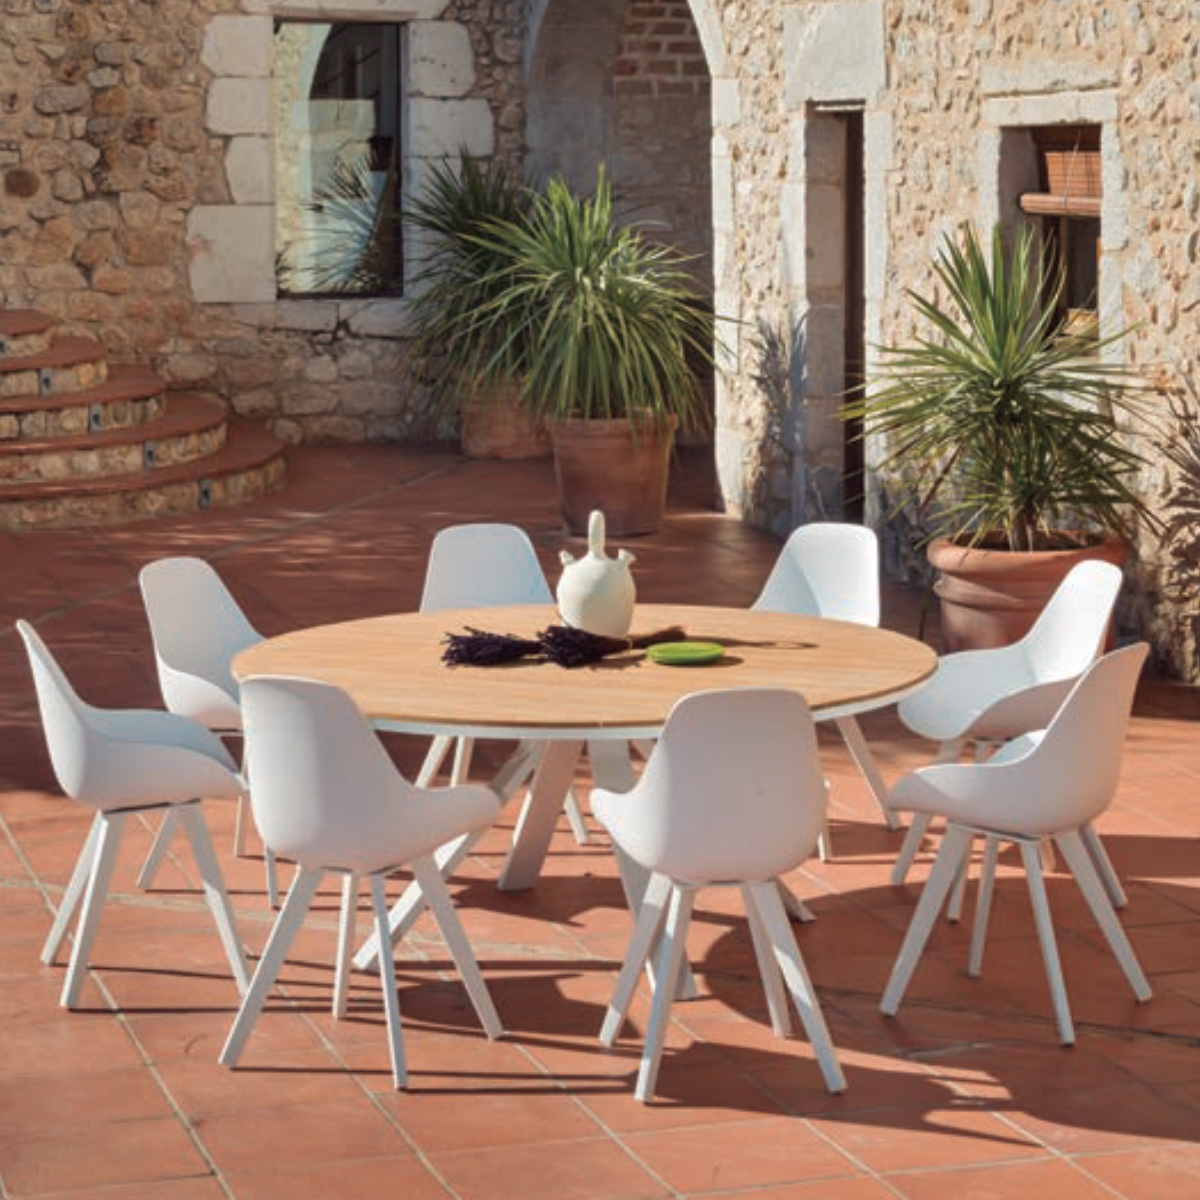 Table exterieur ronde castoria zendart outdoor zendart for Table exterieur 3 metres